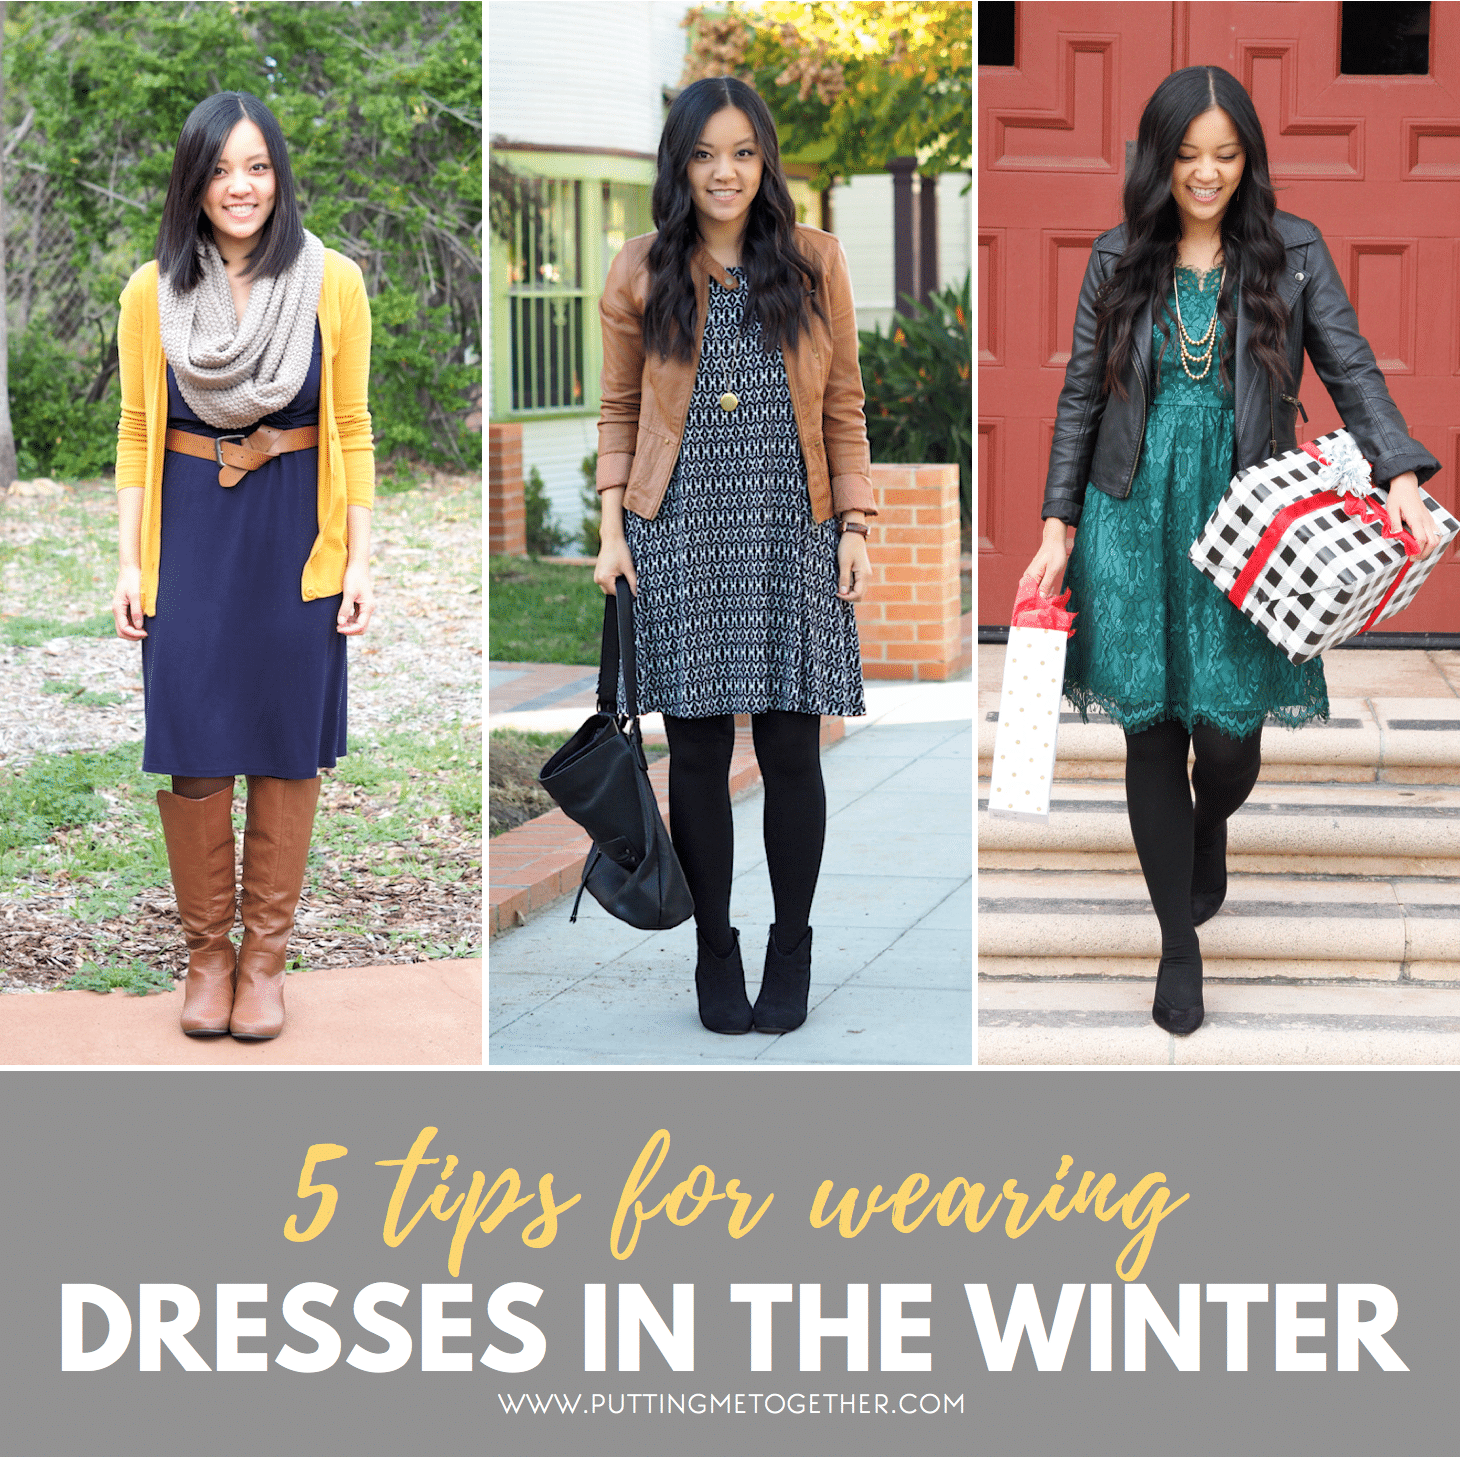 Wear Dresses in the Winter How to Make Dresses Warmer